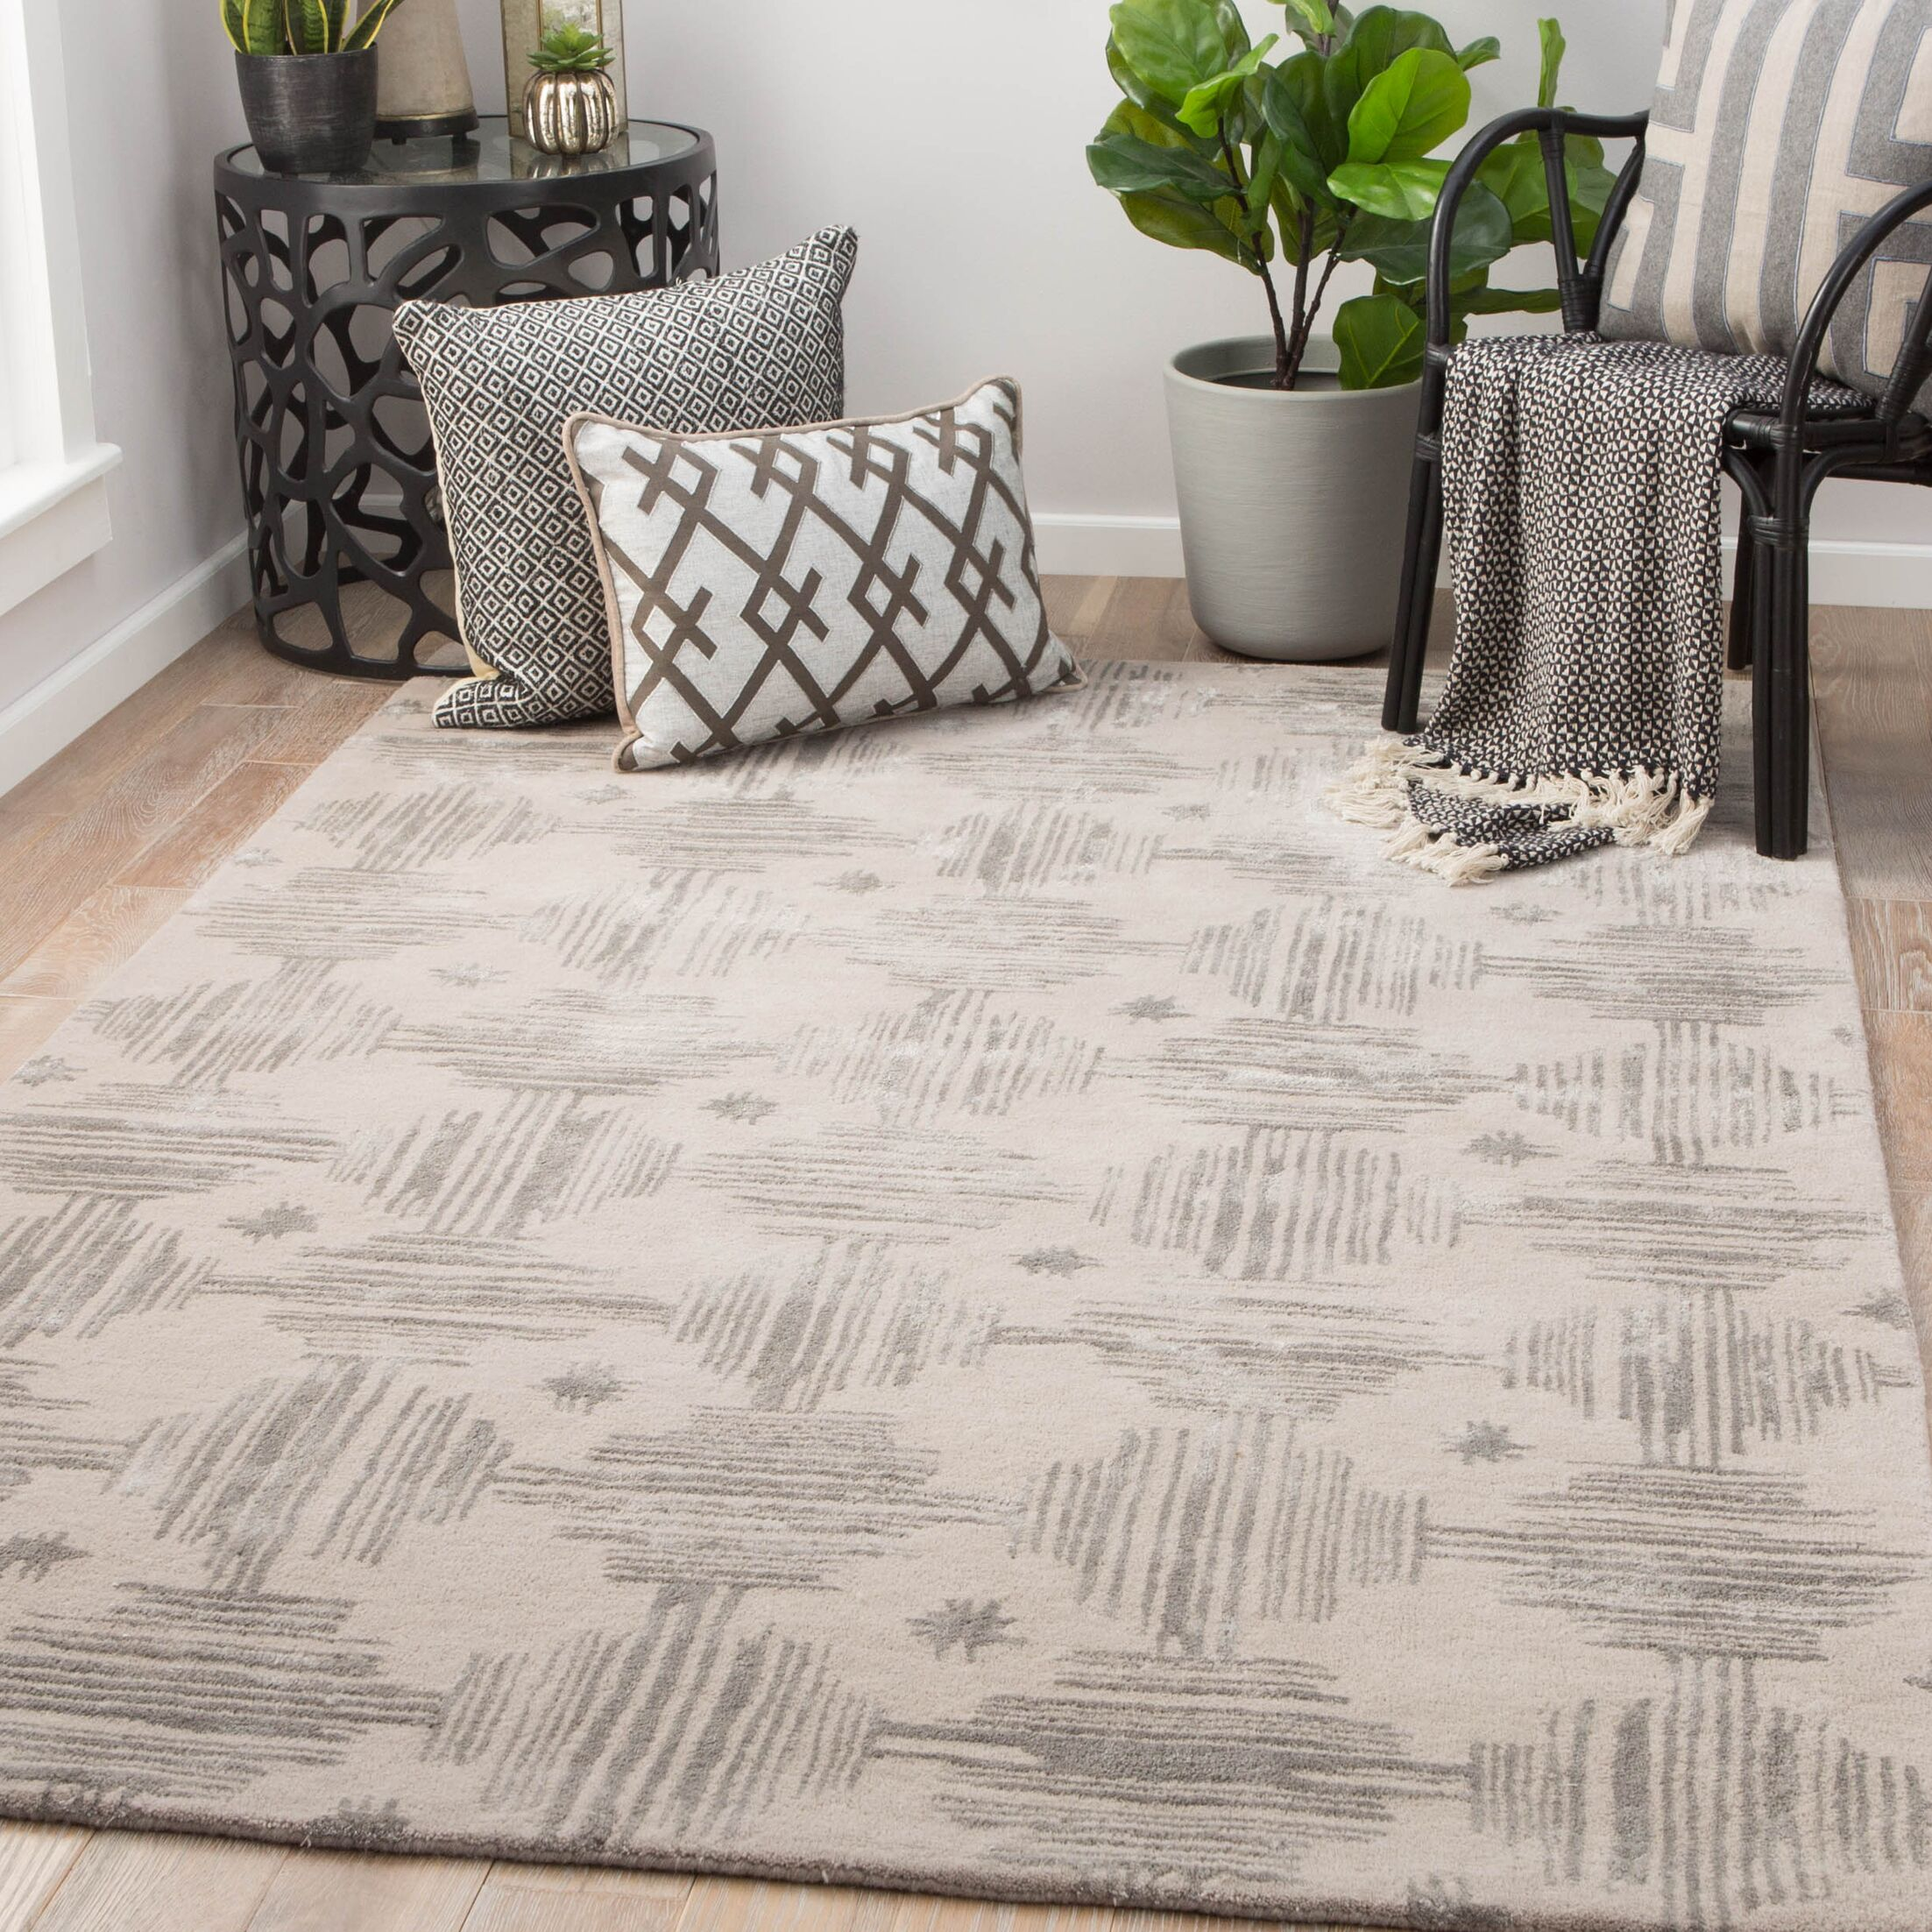 Pangle Hand-Tufted Simply Taupe/Charcoal Gray Area Rug Rug Size: Rectangle 5' x 8'